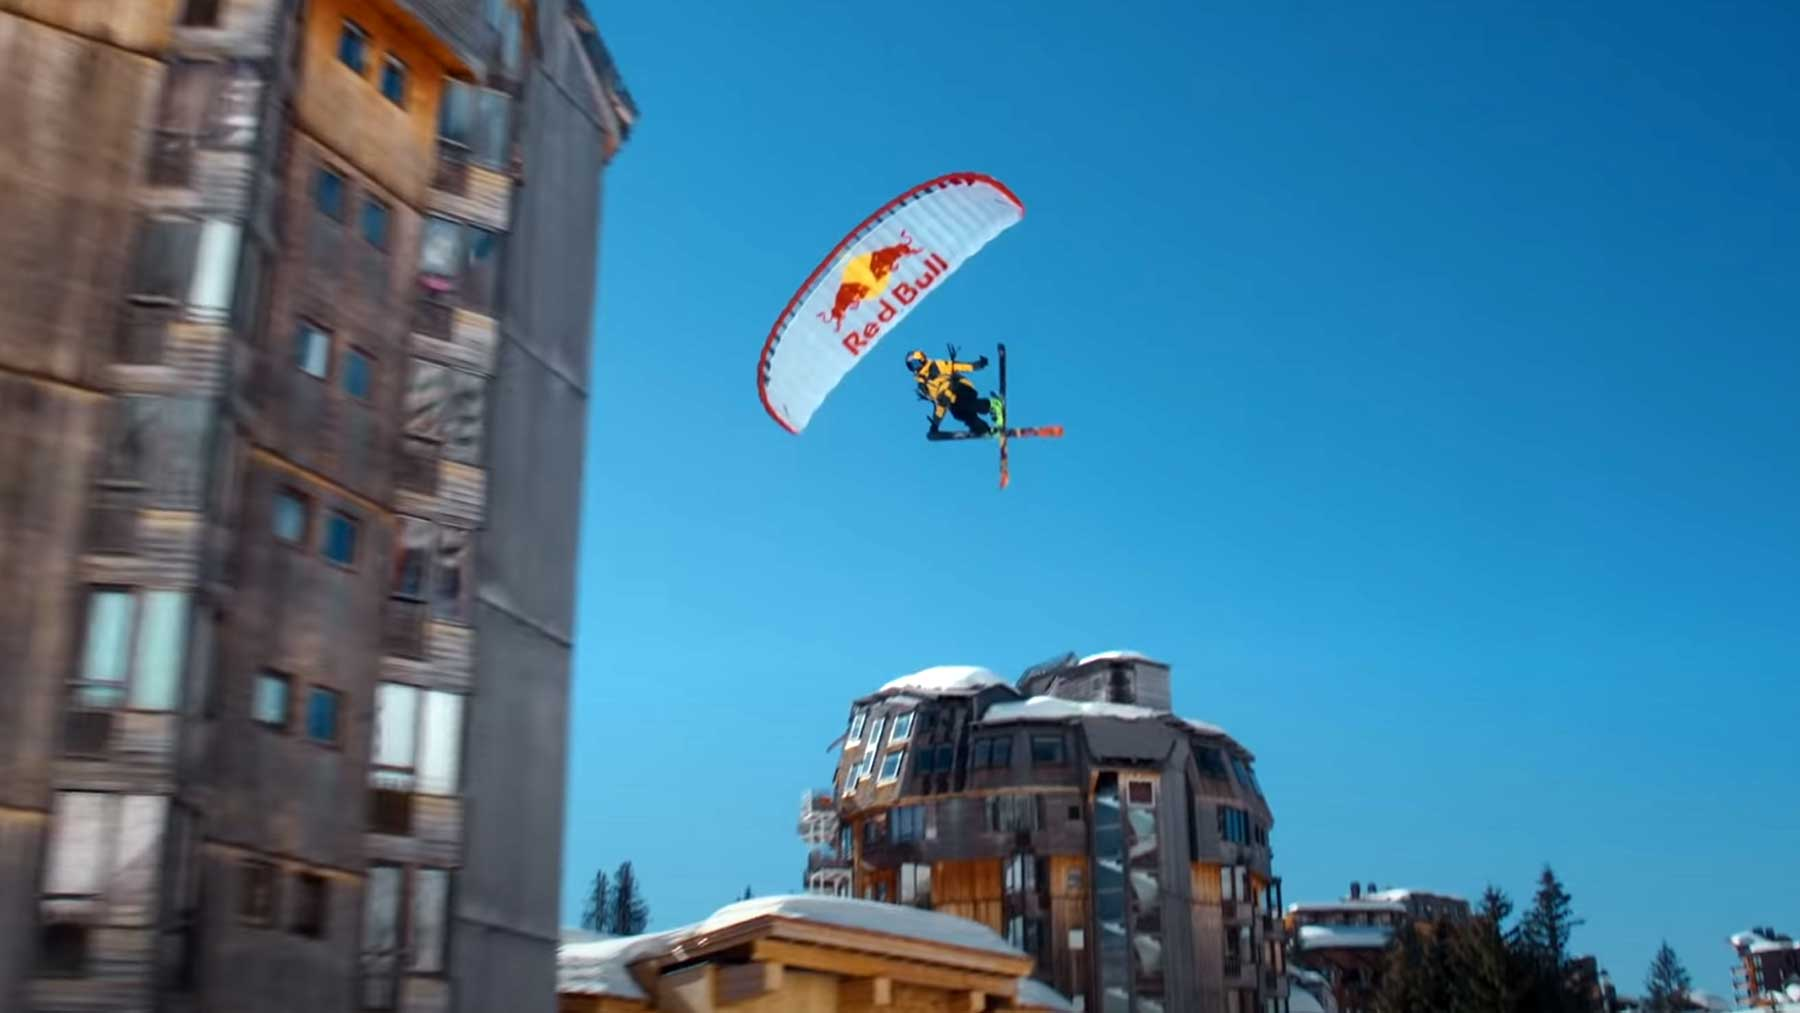 Valentin Delluc fliegt Ski Speedriding-Through-An-Alpine-Resort-From-Avoriaz-With-Love